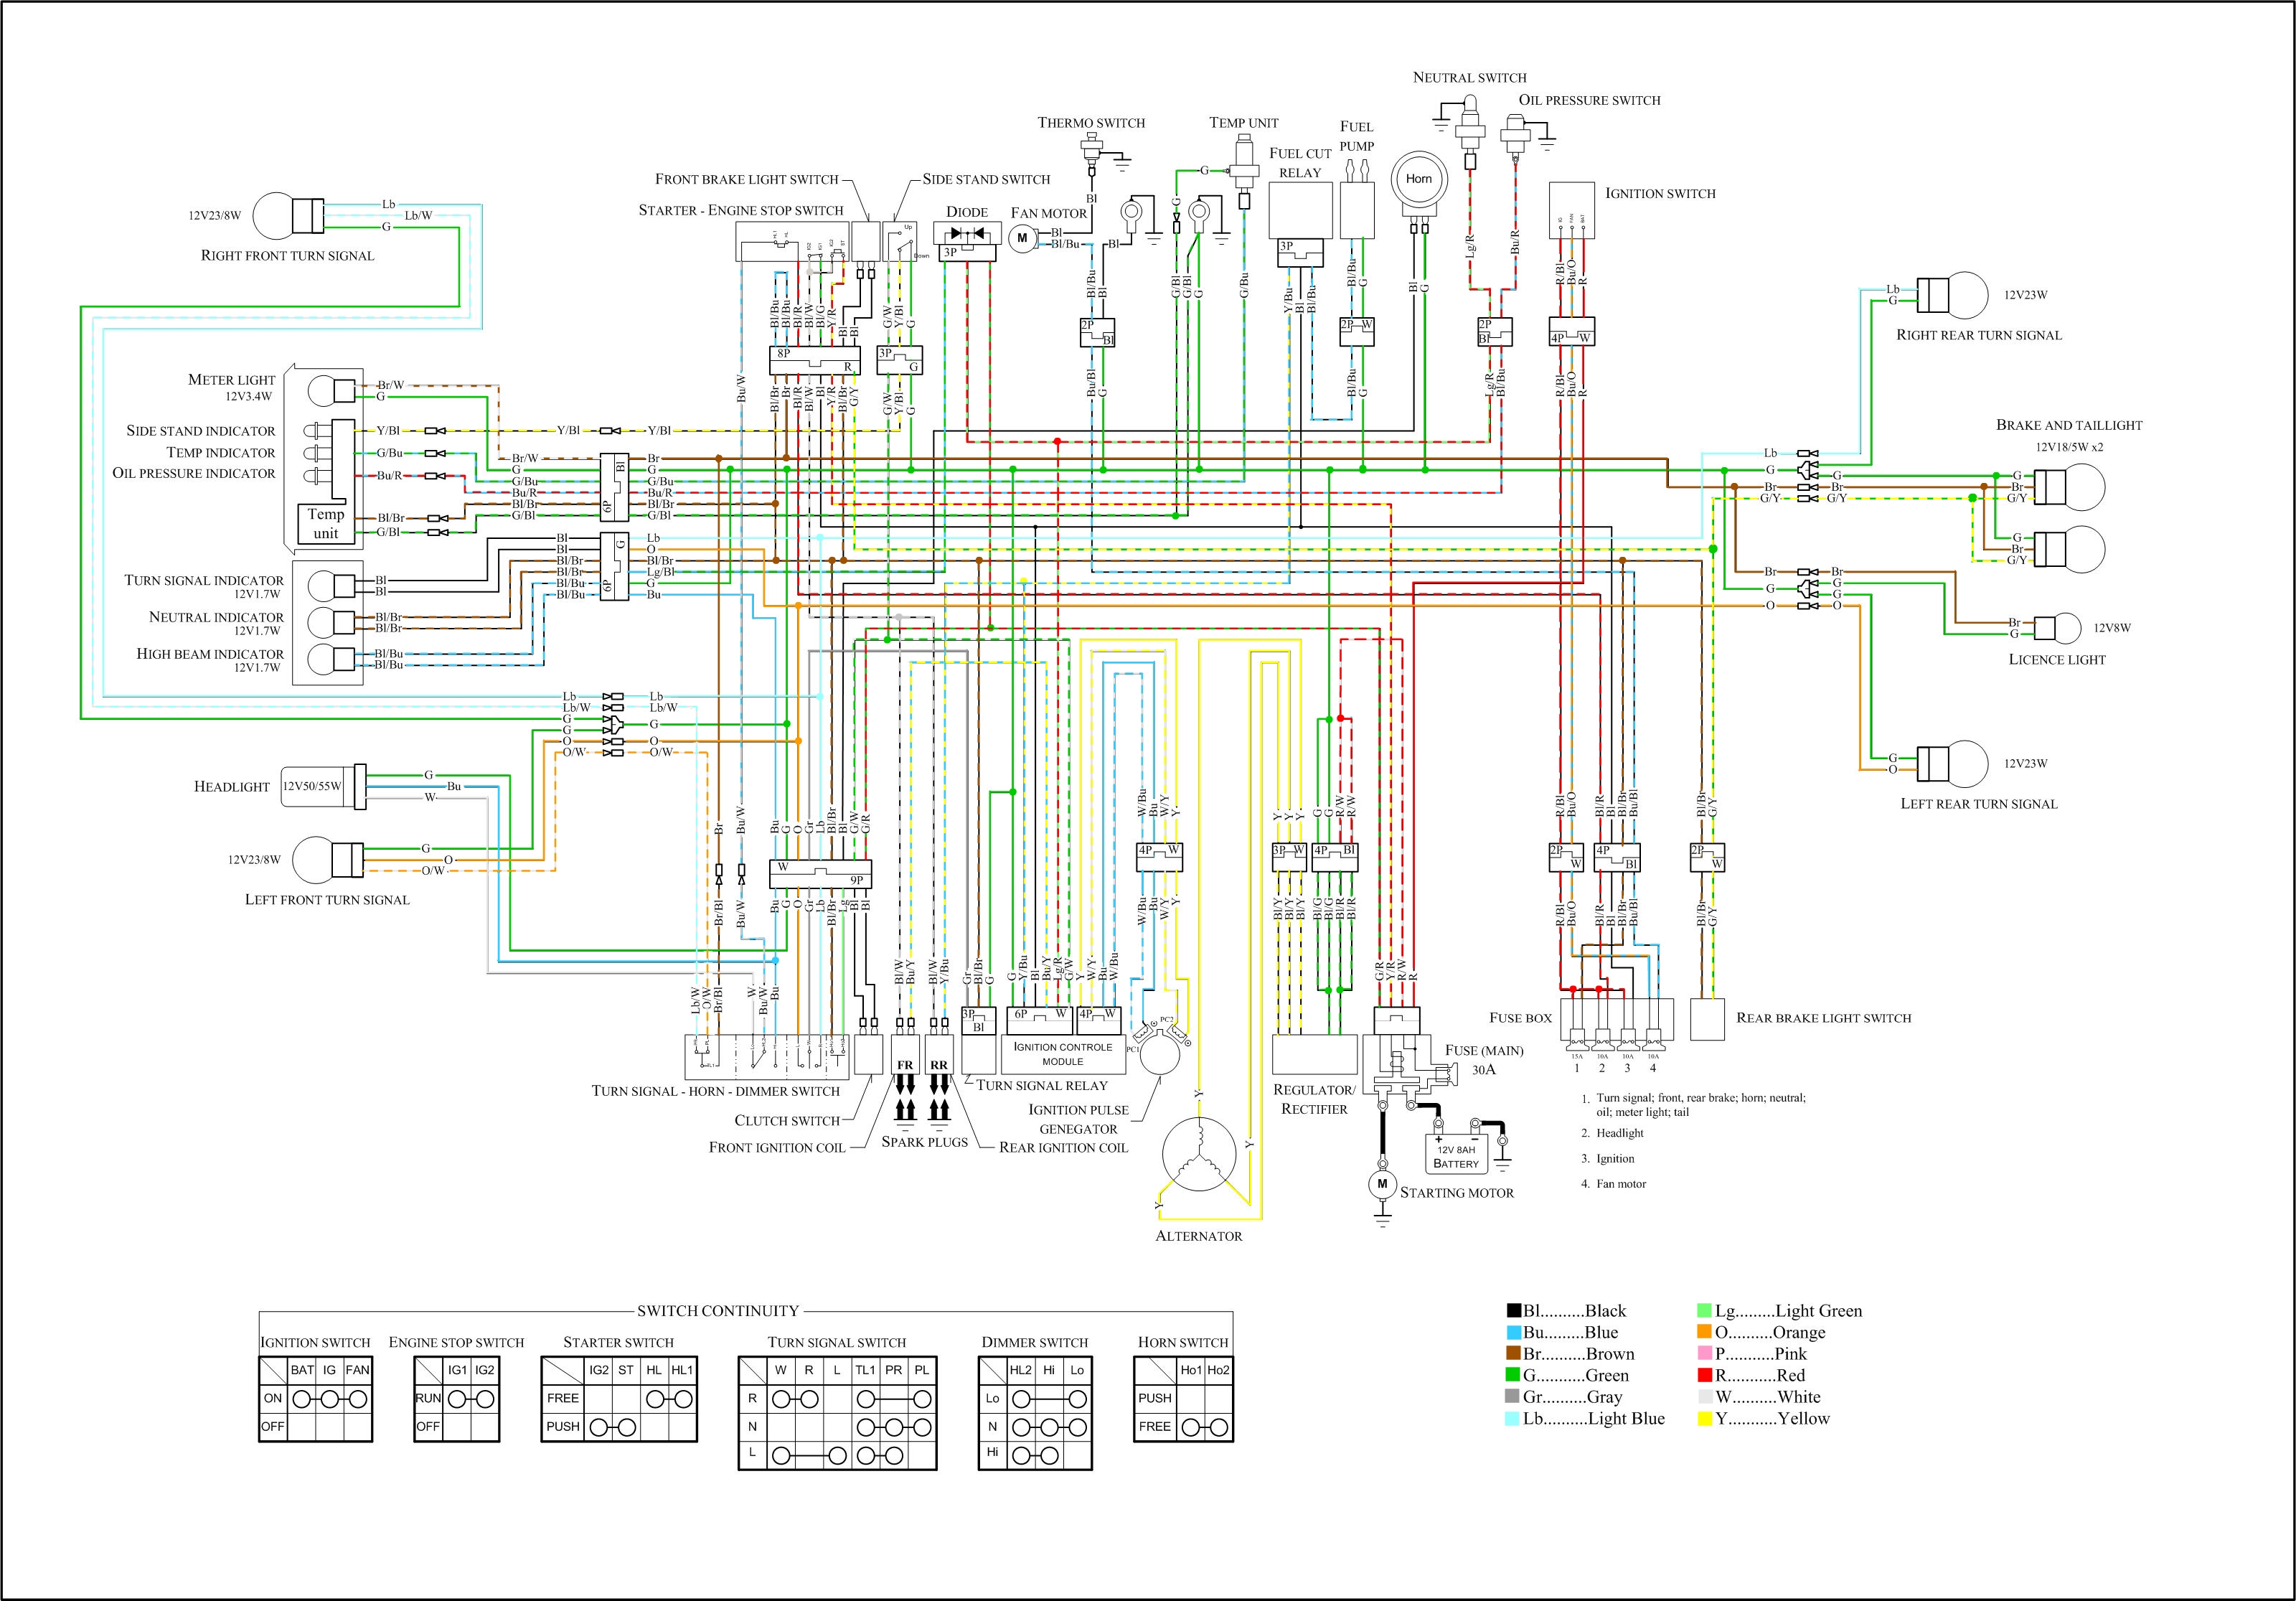 Worldwar2airsoftweaponswjv furthermore Simple Airbag Wiring Diagram furthermore Air Curtain Diagram also Dell Motherboard Cpu Fan Header Question also Hydraulic Steering System Diagram. on shadow 2 wiring diagram